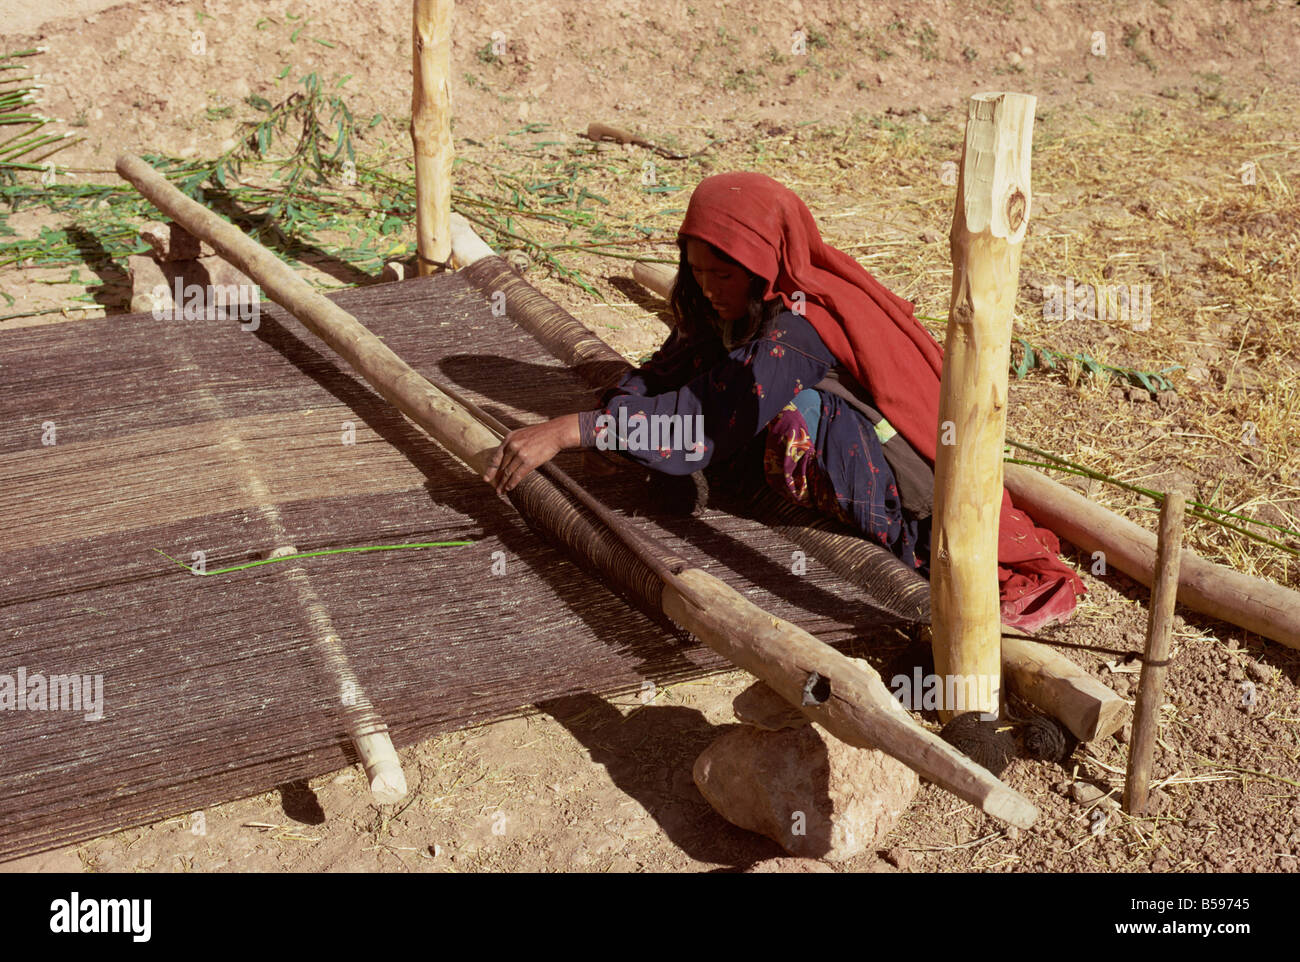 Woman weaving galim, a type of sacking, Afghanistan - Stock Image